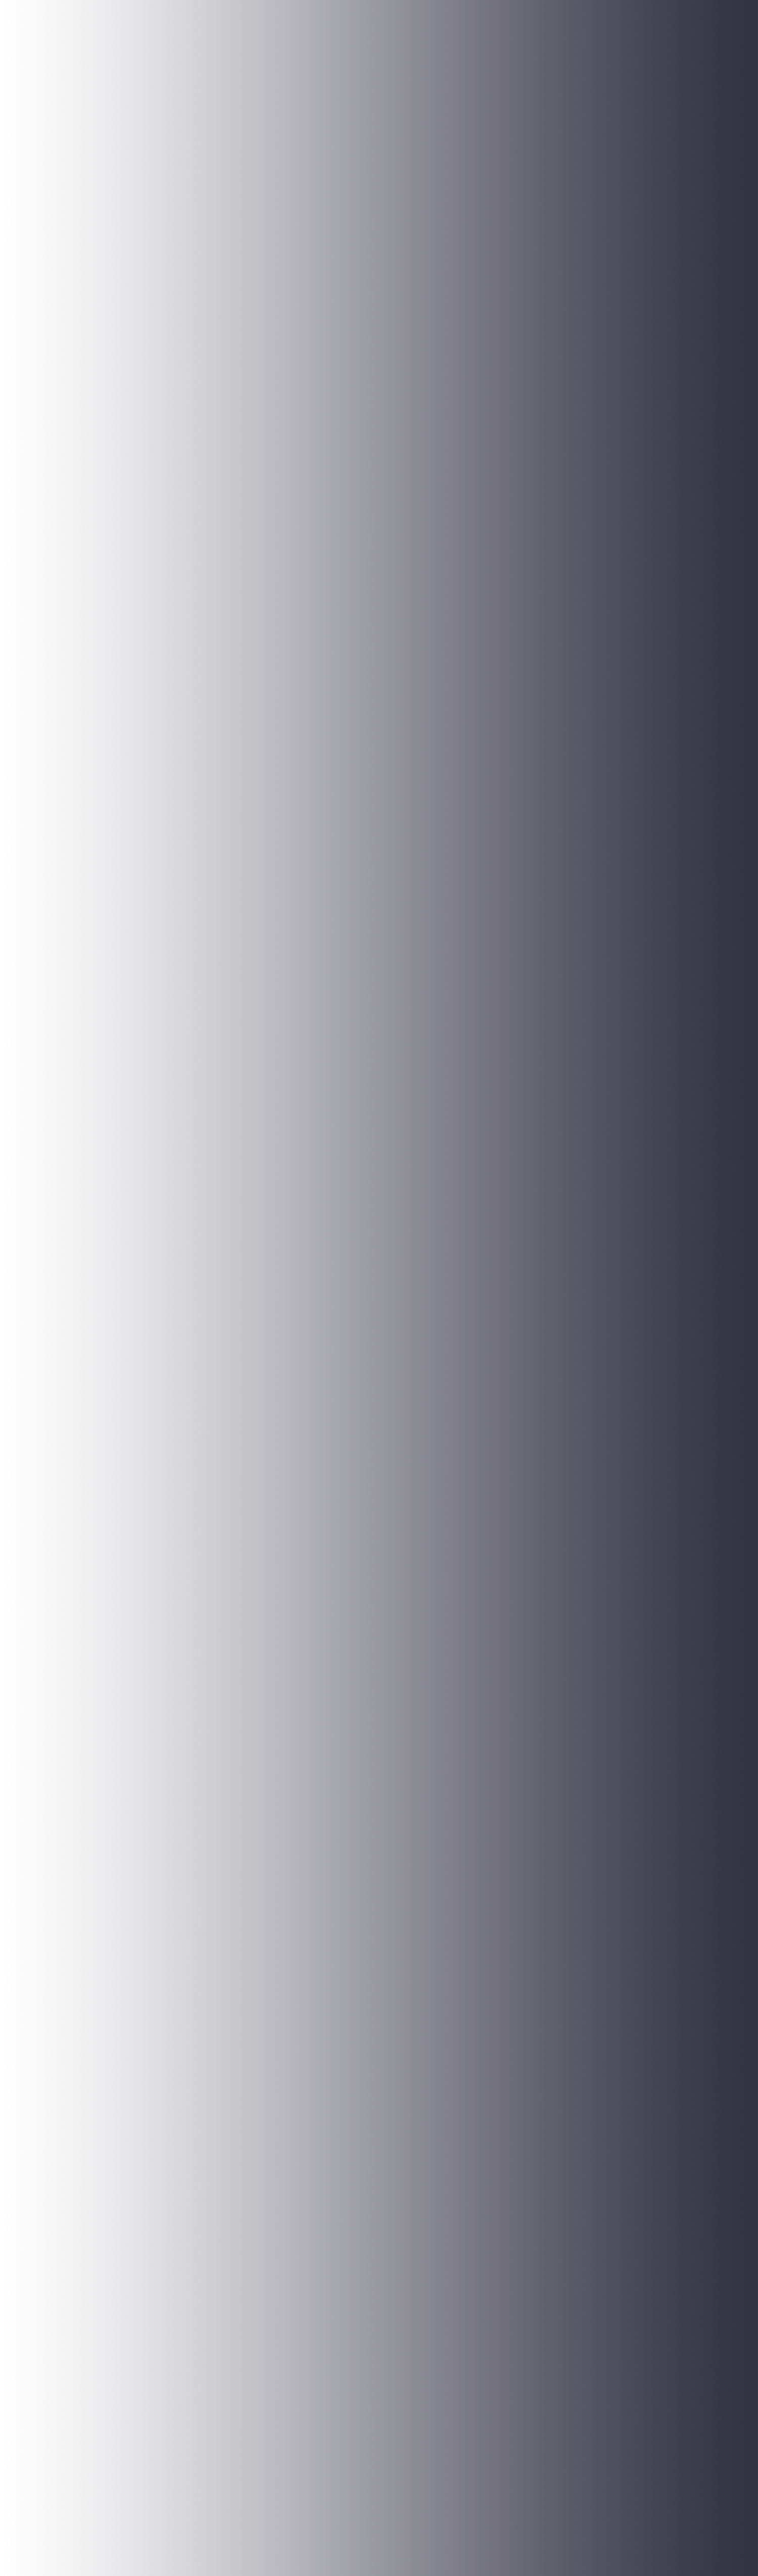 Dark Blue Gradient.png